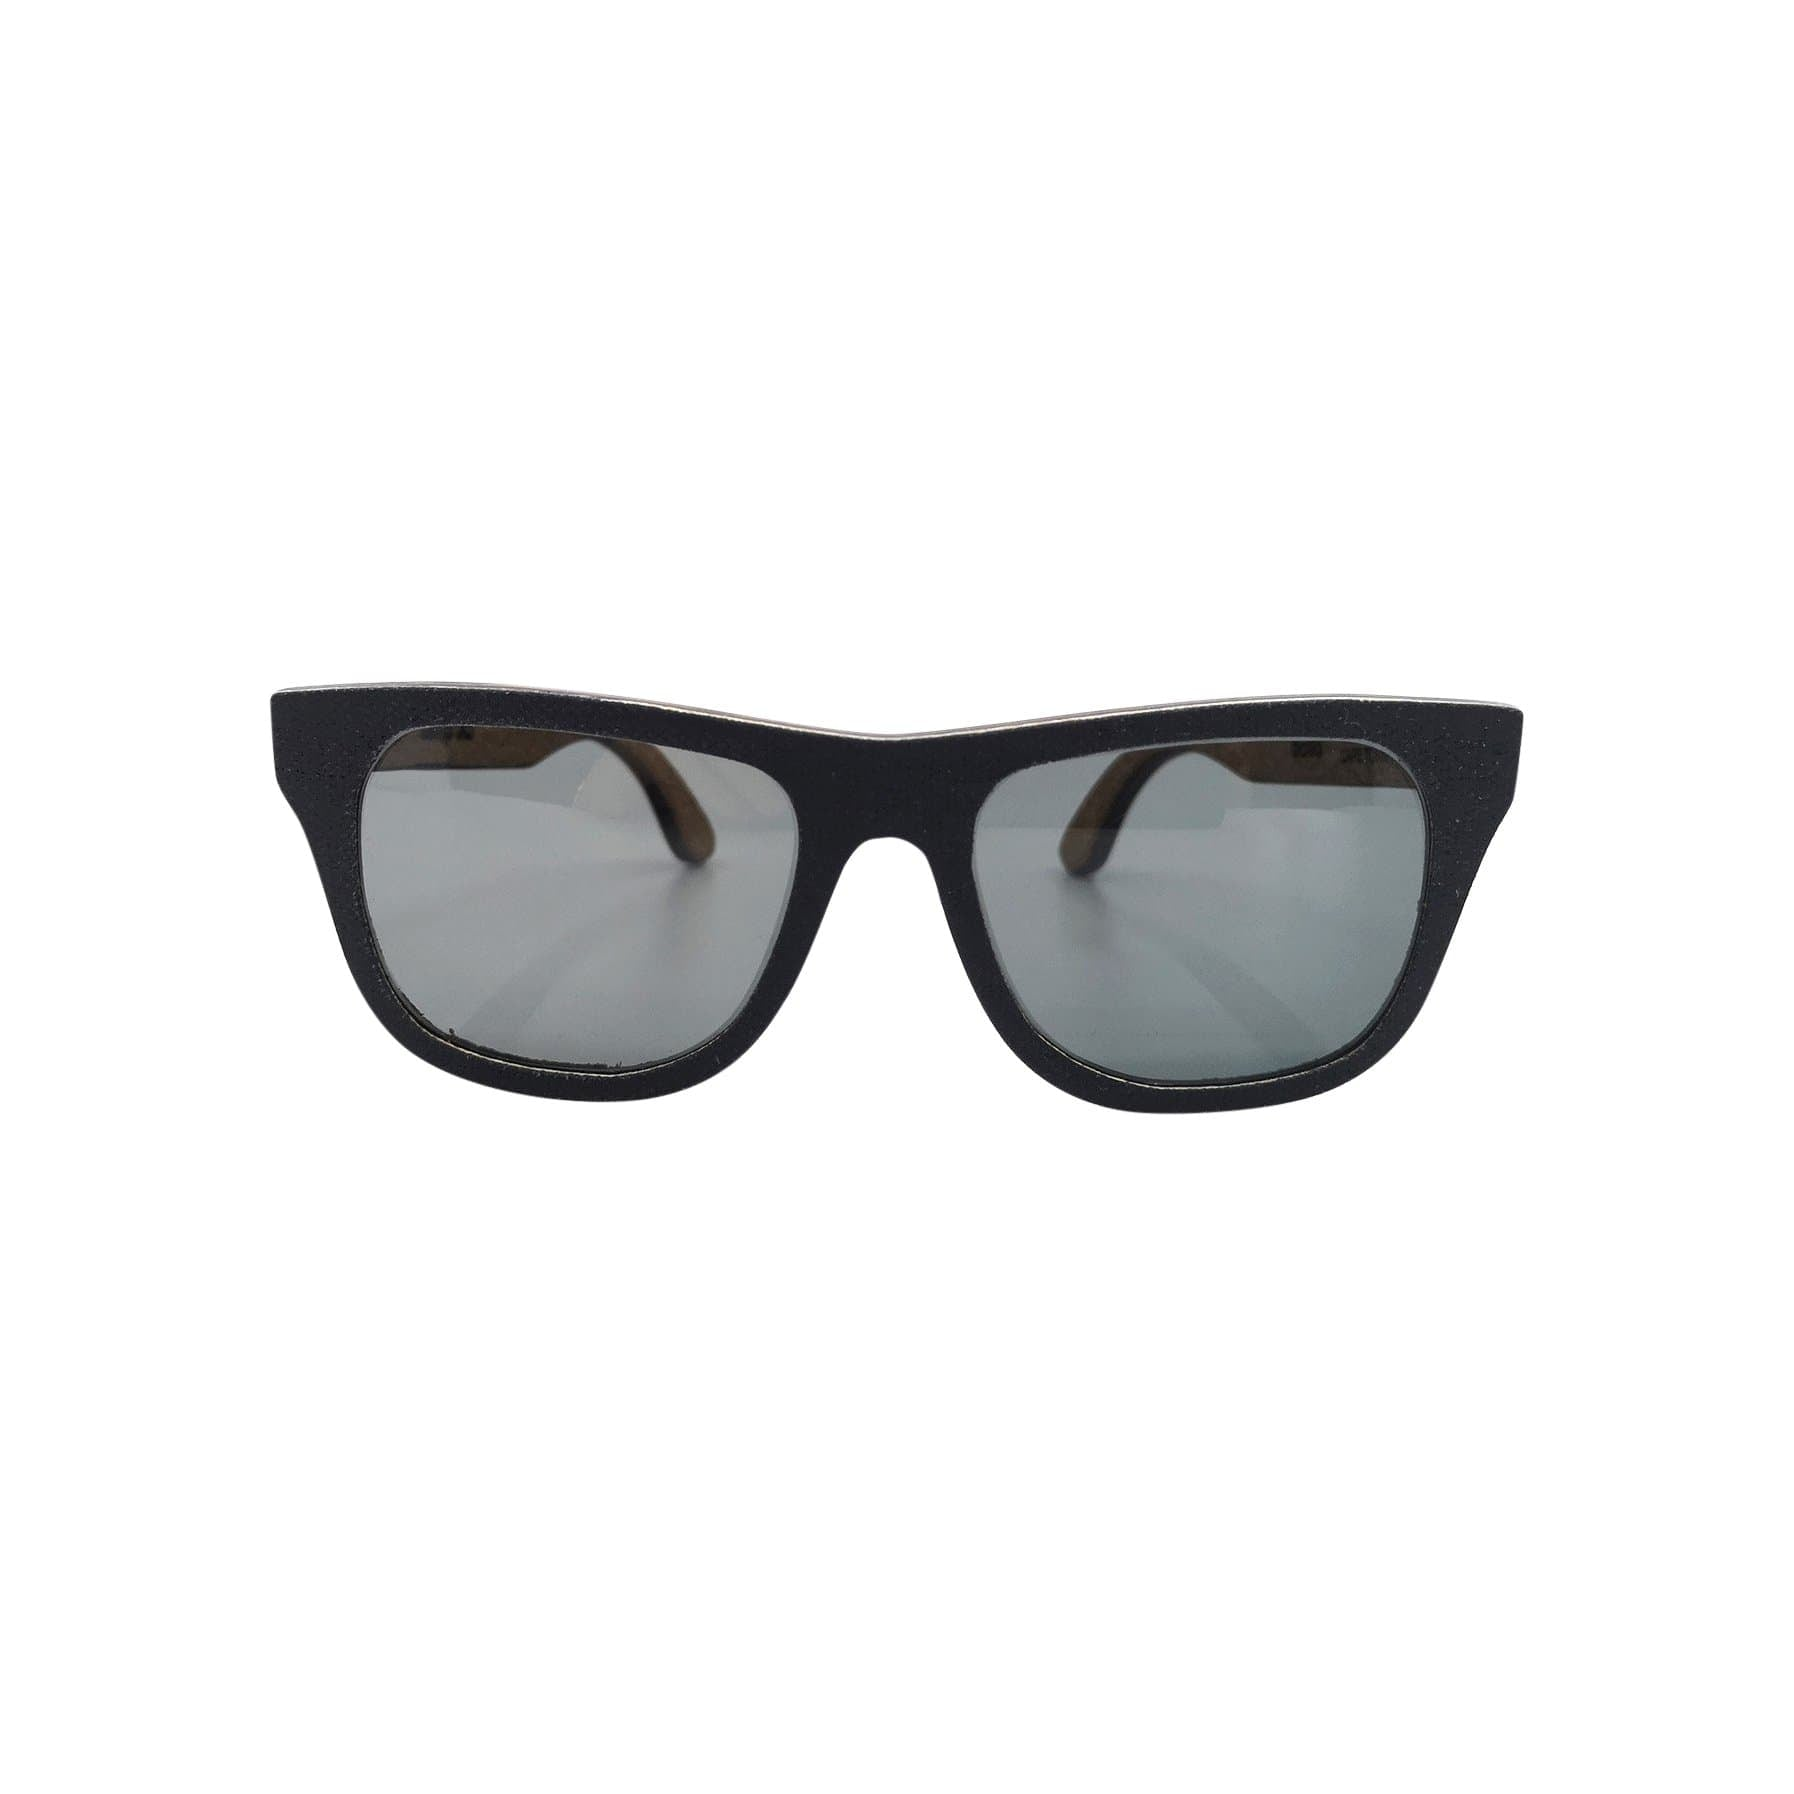 Ballo Sunglasses + Eyewear AJ with Hemp Fabric